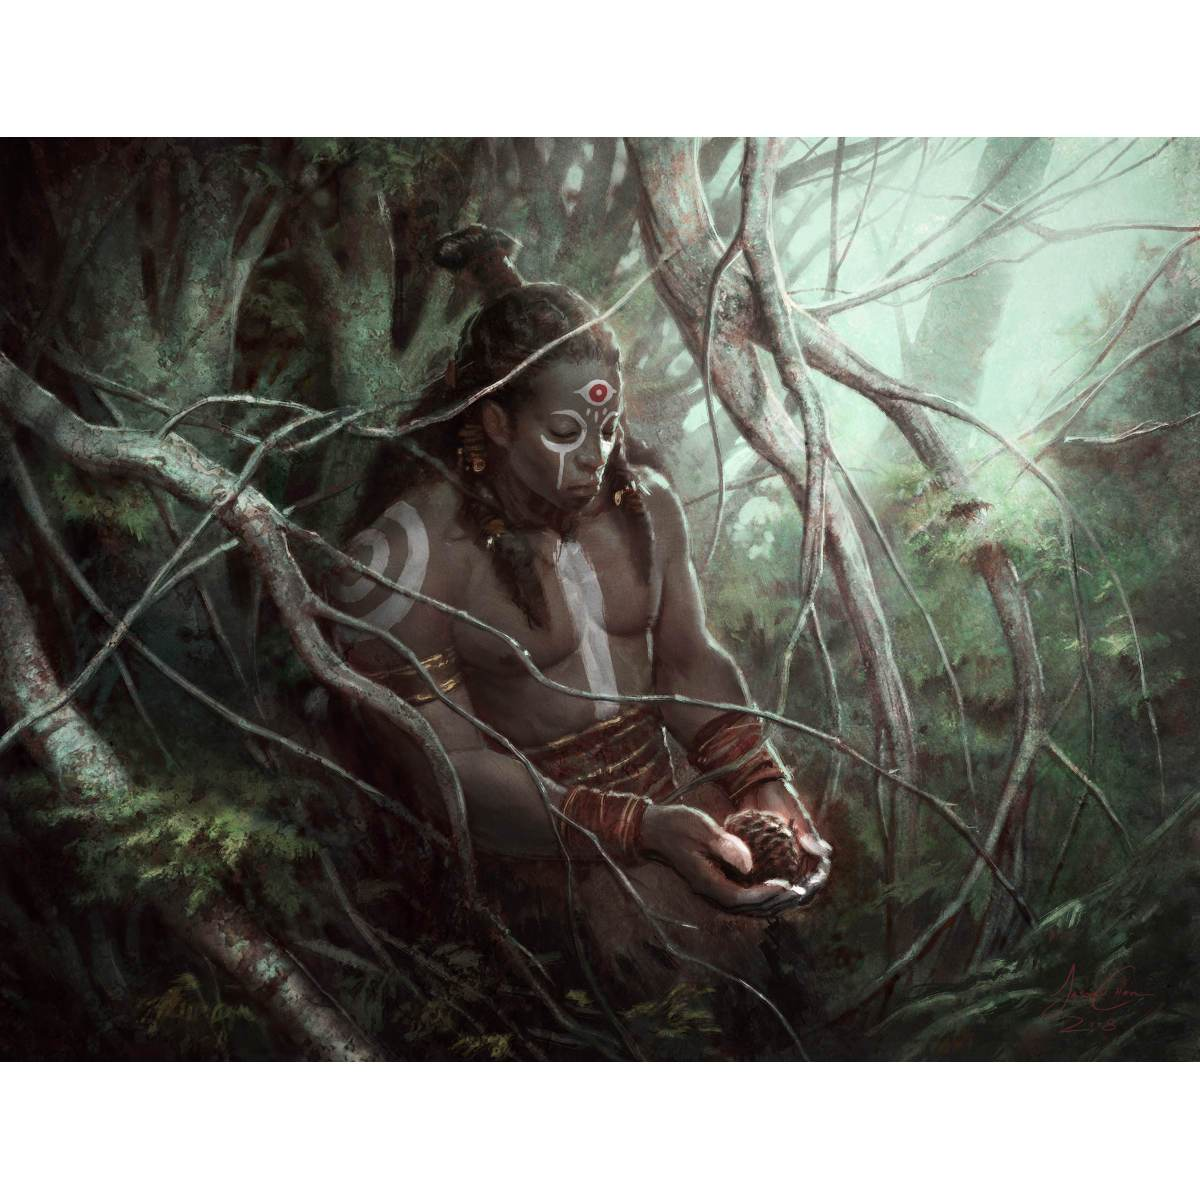 Awakener Druid Print - Print - Original Magic Art - Accessories for Magic the Gathering and other card games